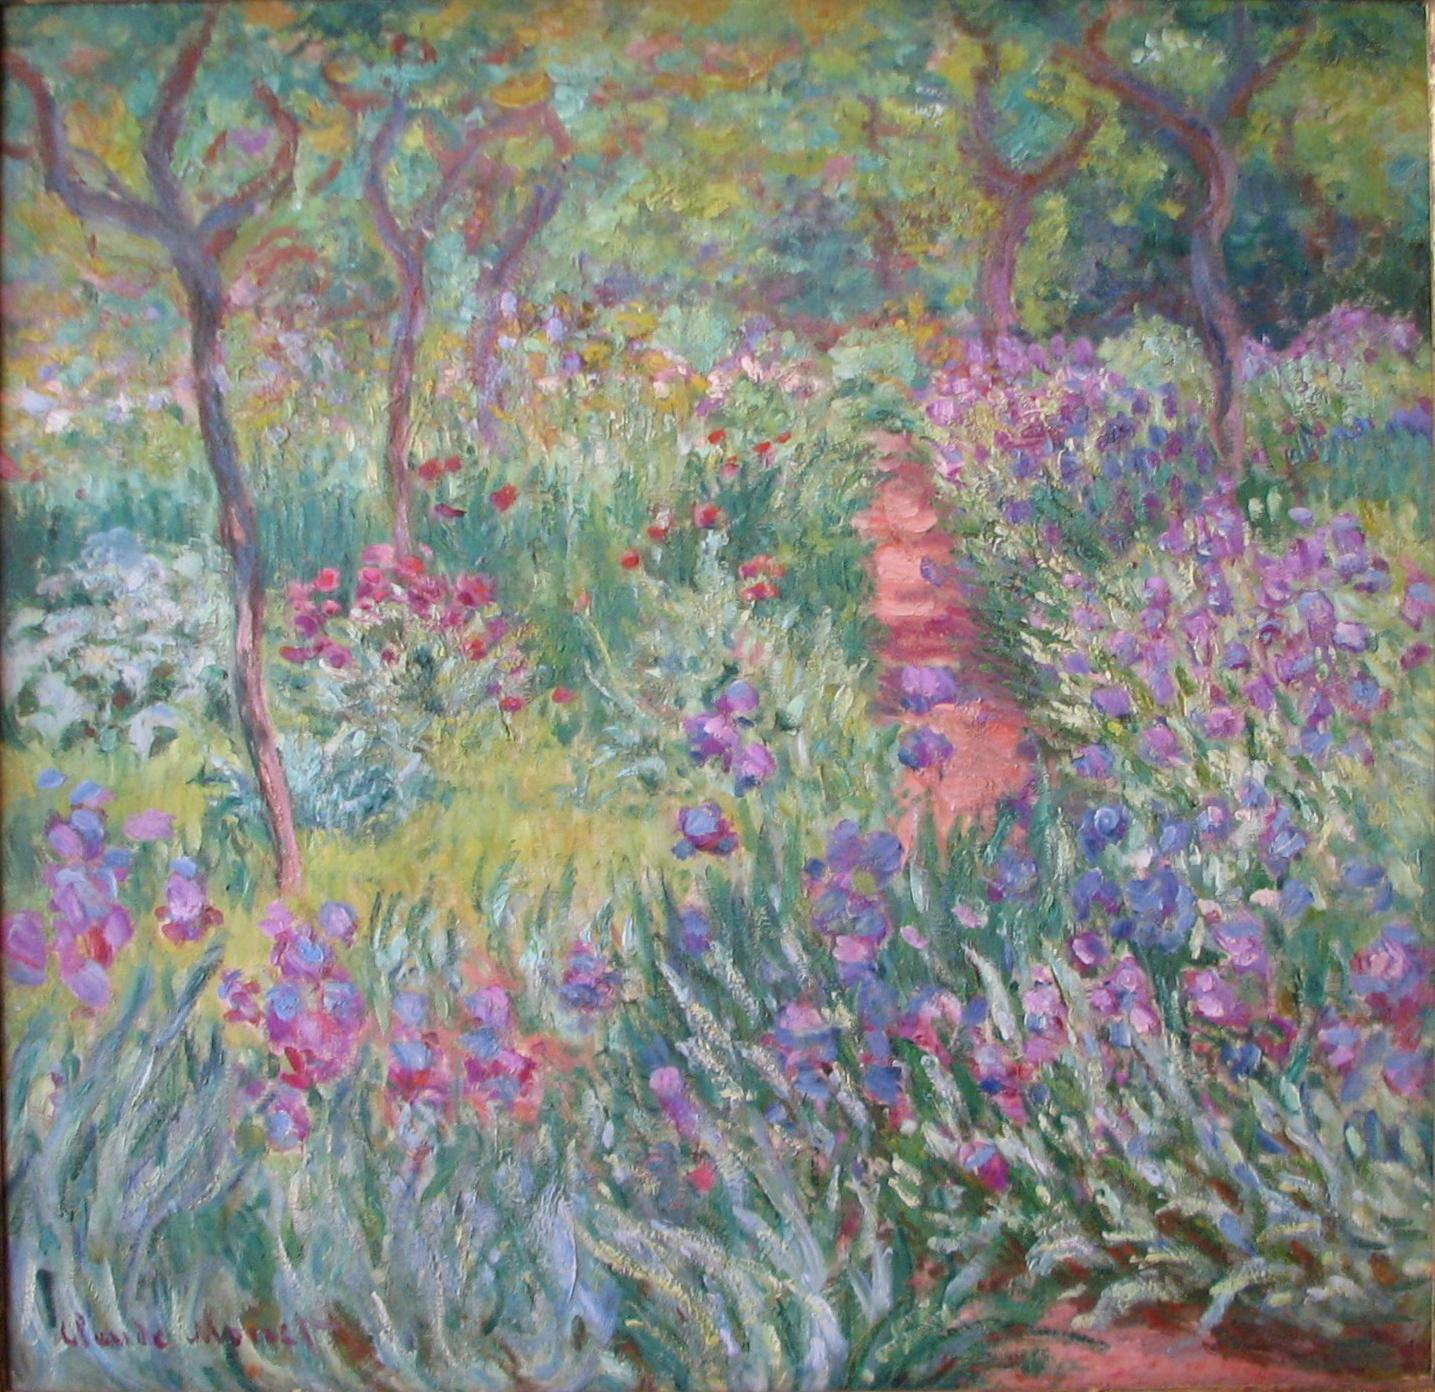 Datei claude monet wikipedia for Monet paintings images